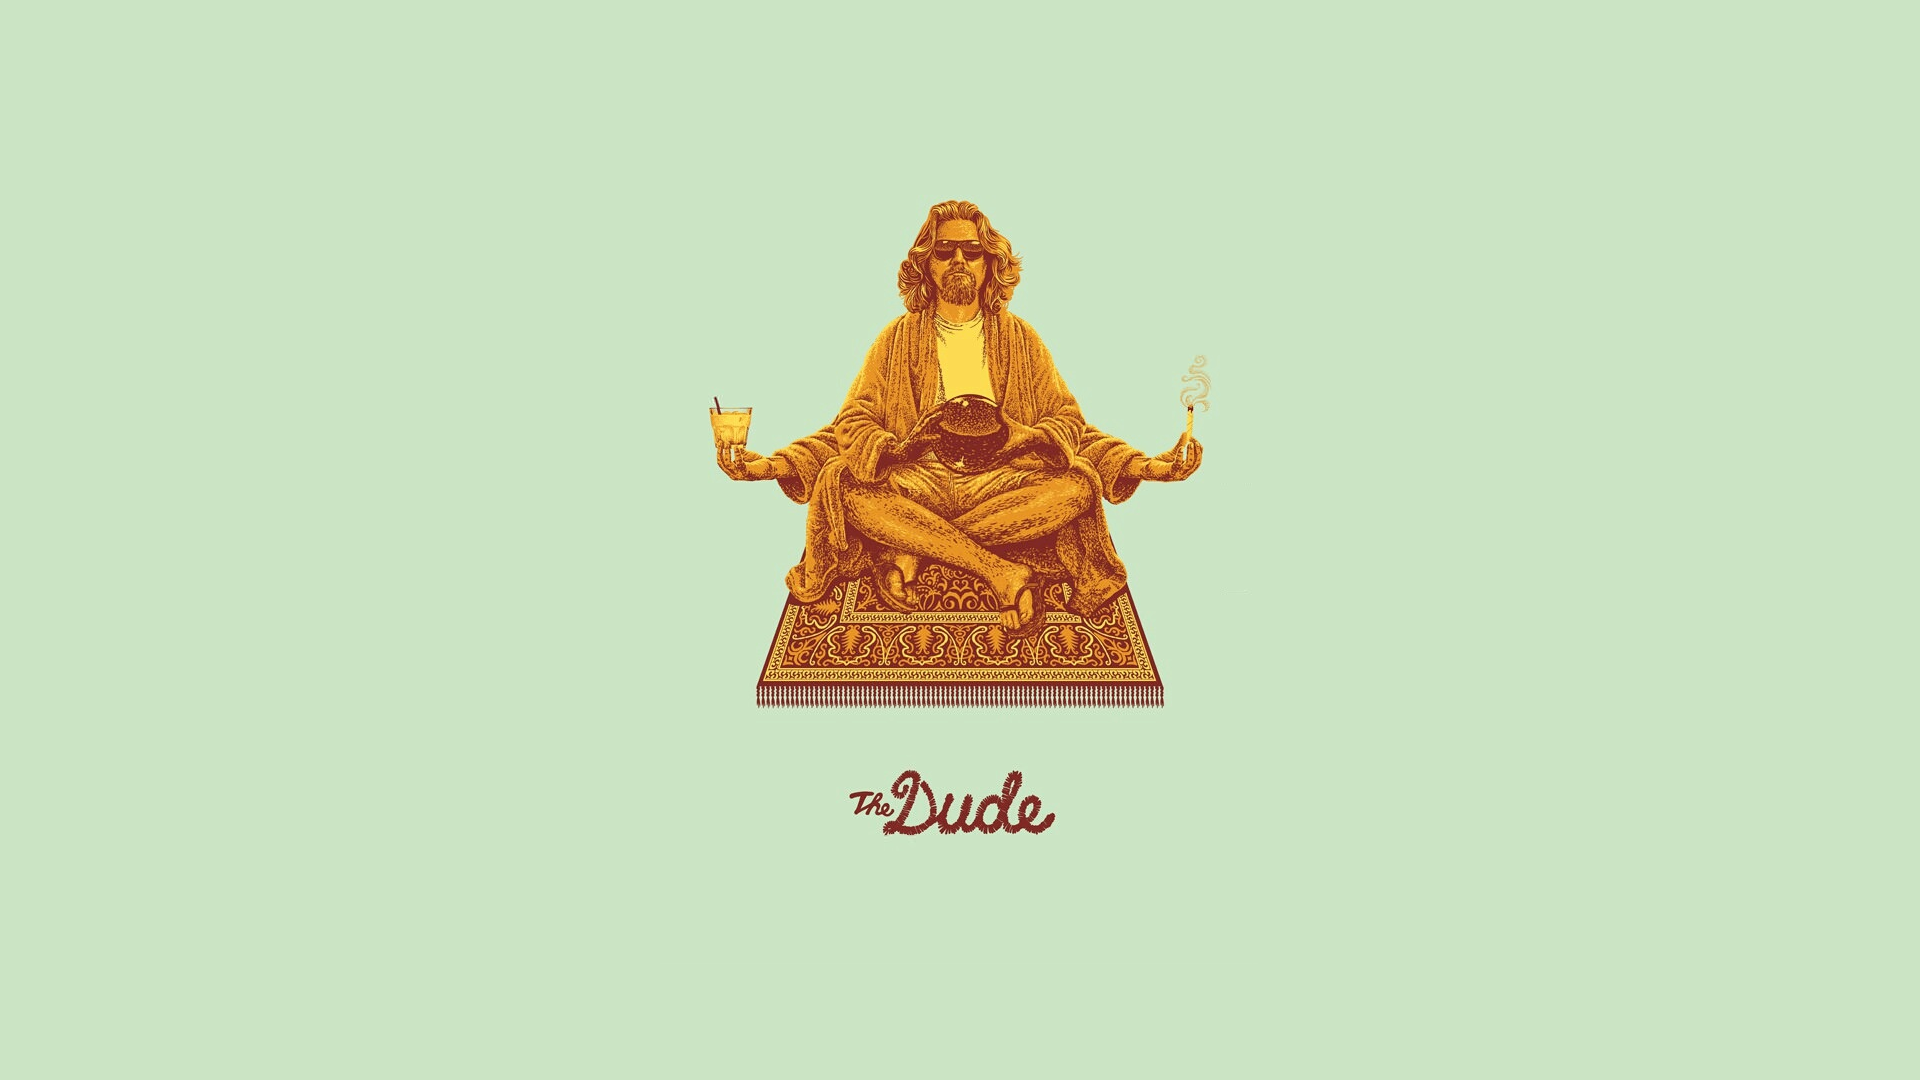 Fine Dude Wallpapers, #TDUTDU-64